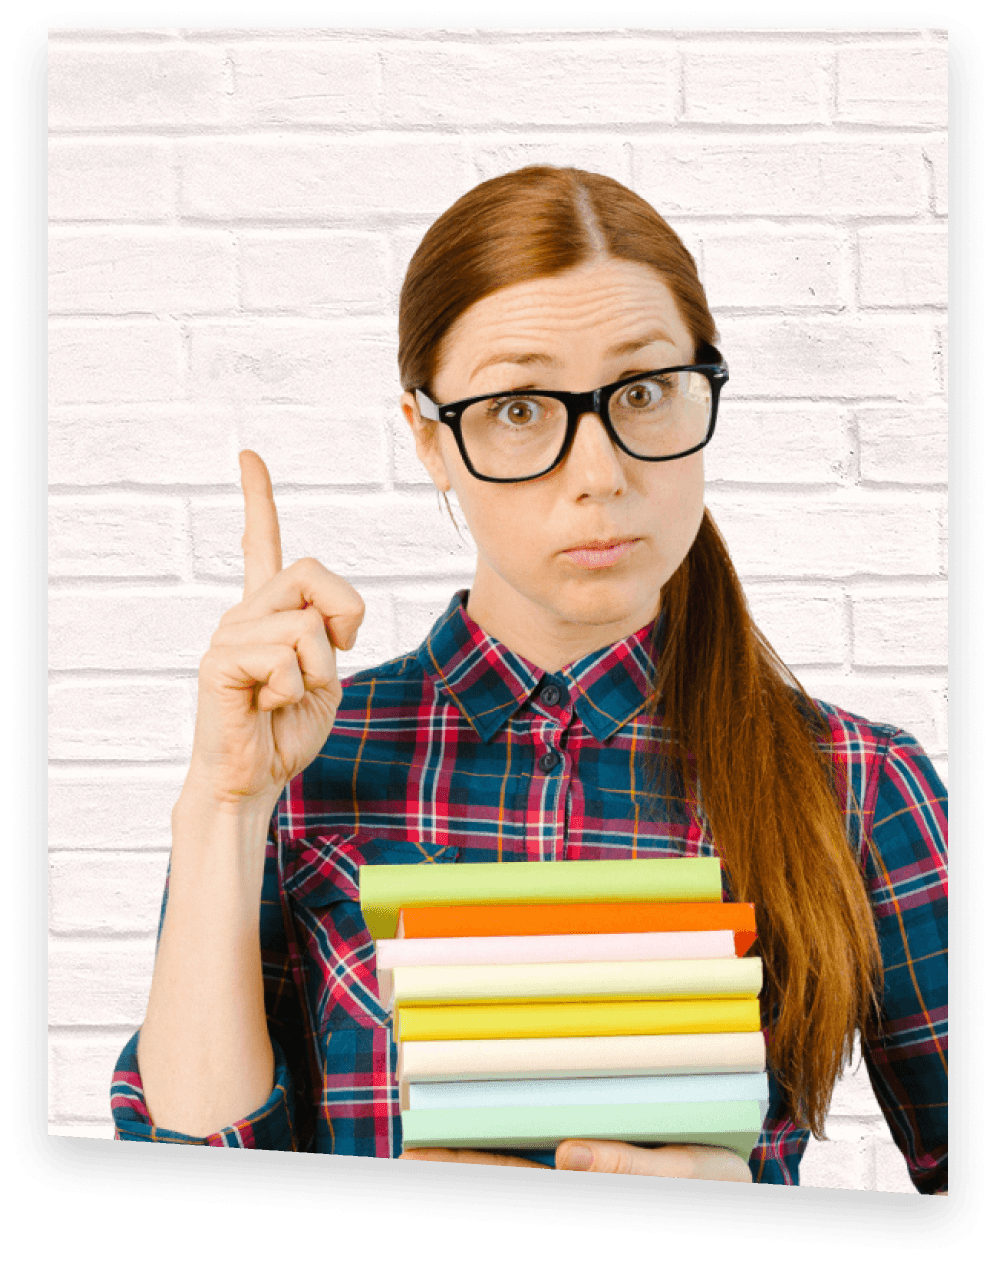 Shmoop's AP Exam Prep Tutor, AP Annie, a girl with red hair and glasses pointing up while holding stack of books